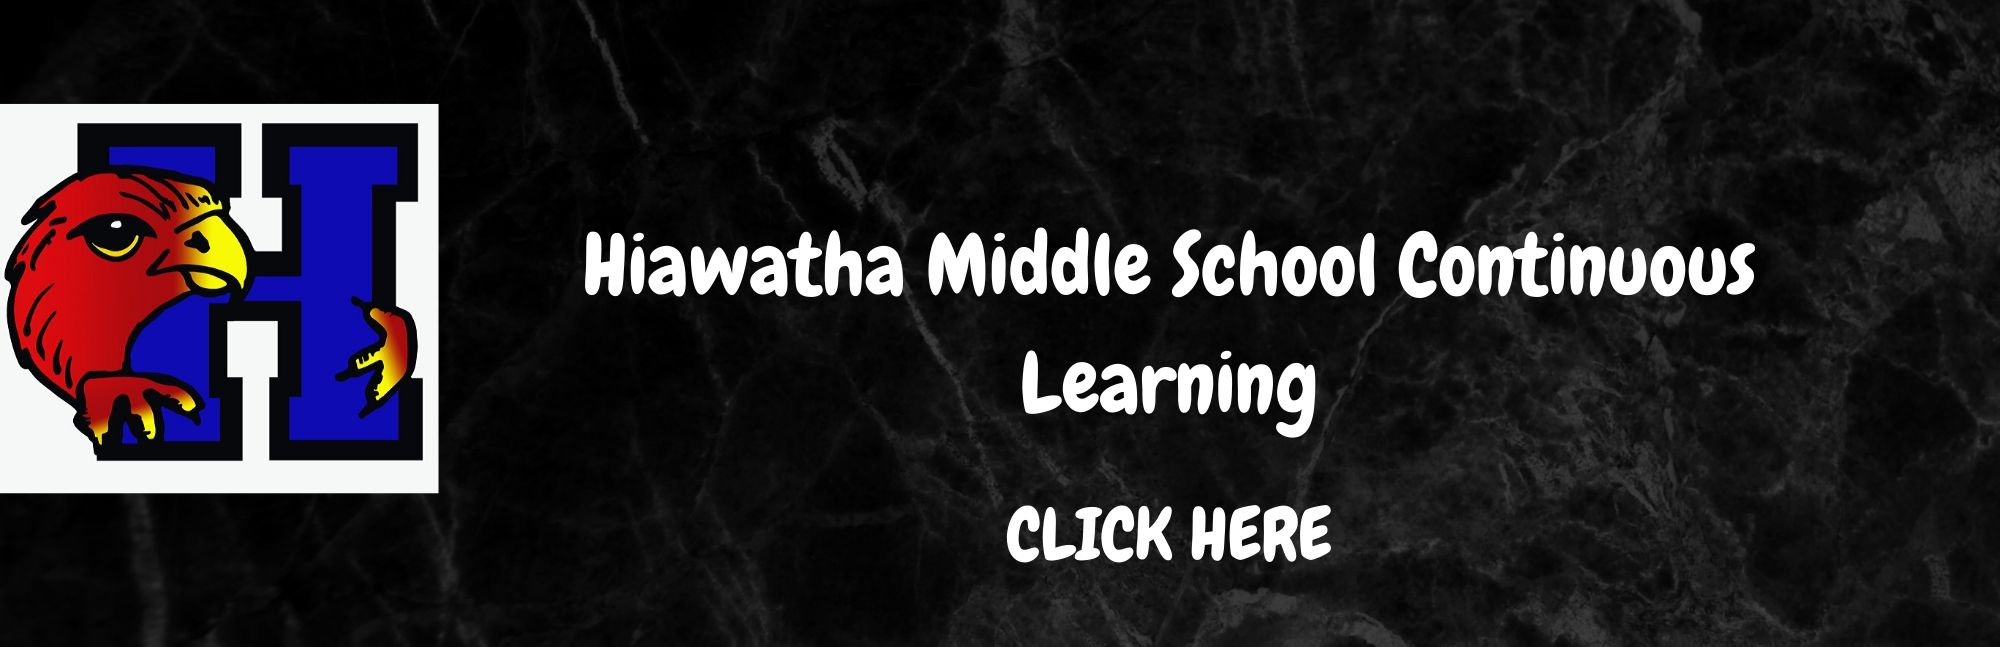 Hiawatha MIddle School Continuous Learning Resources